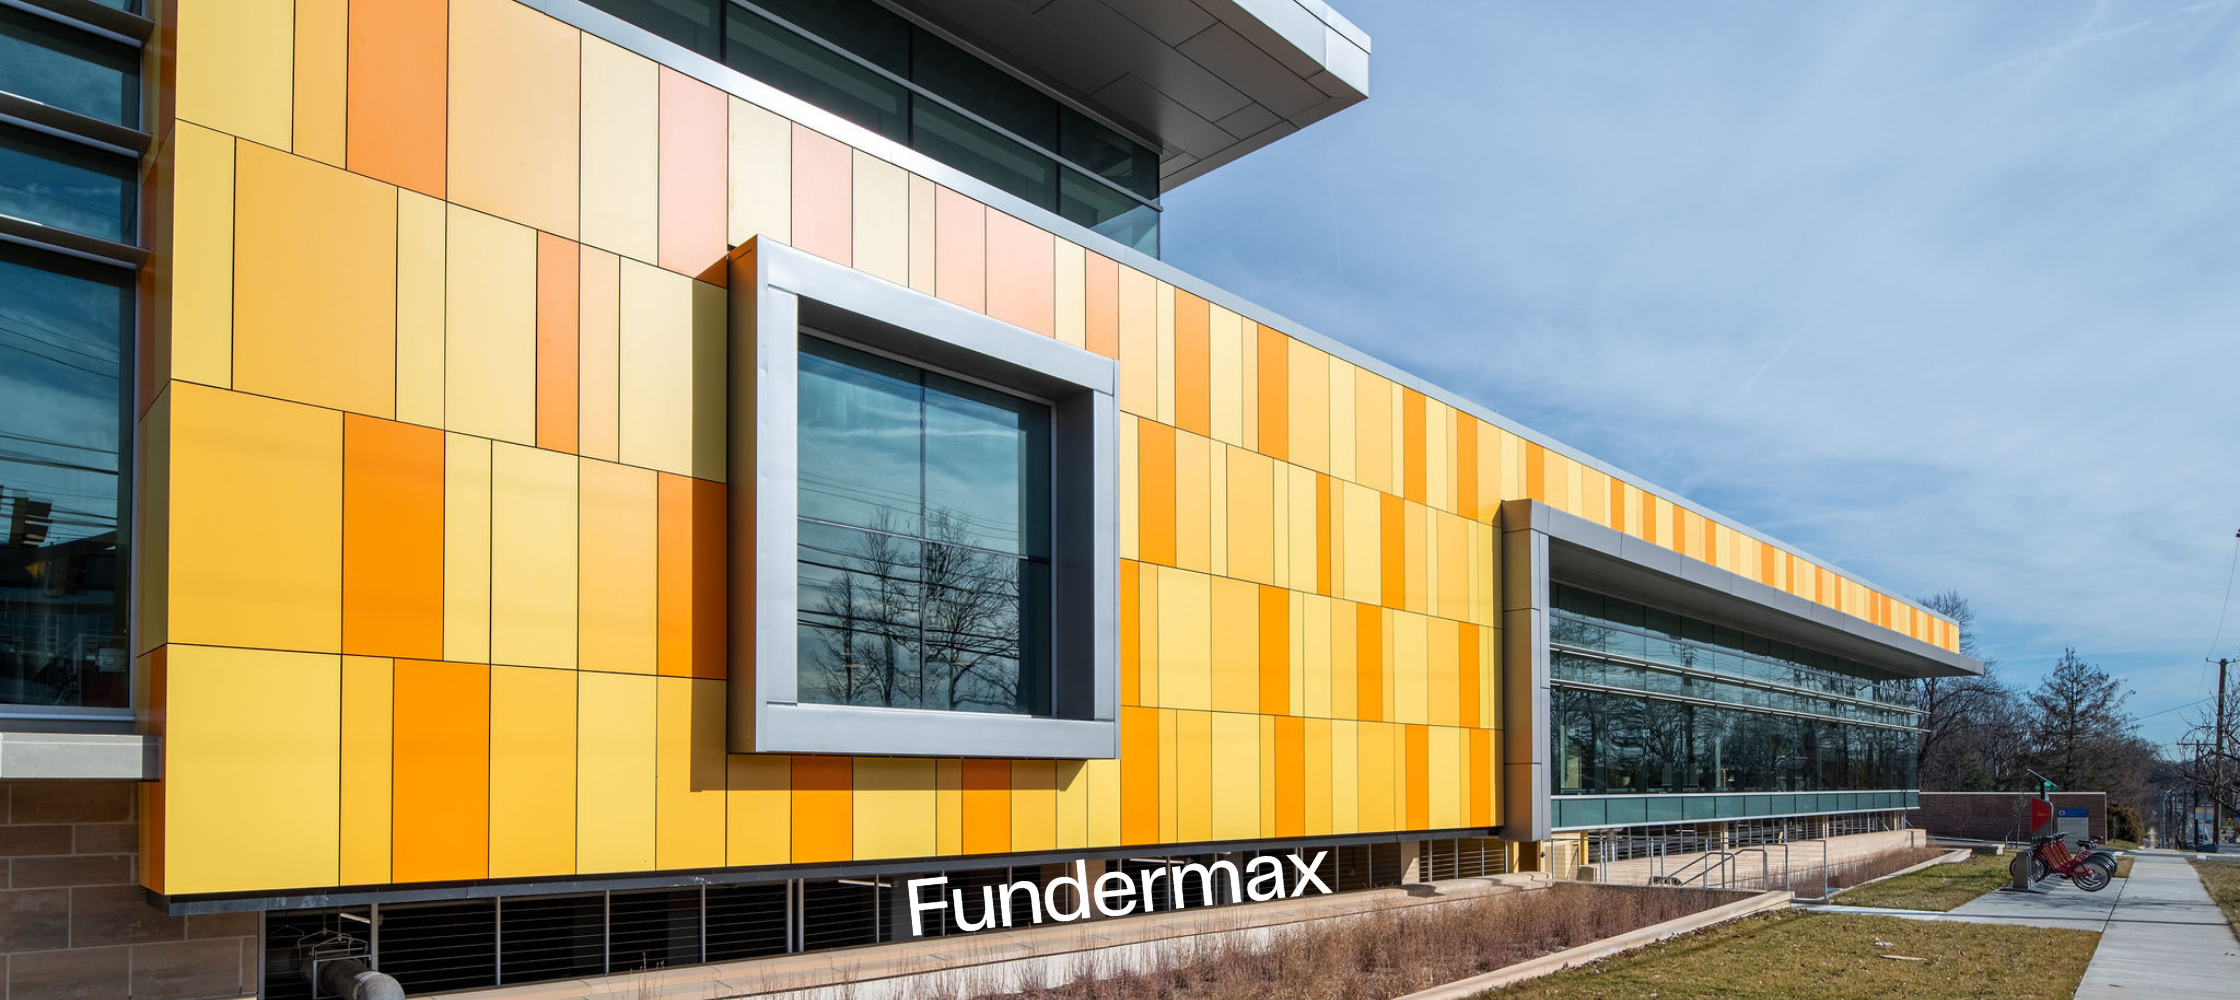 Why Fundermax is The Name You Want on Your Phenolic Panels